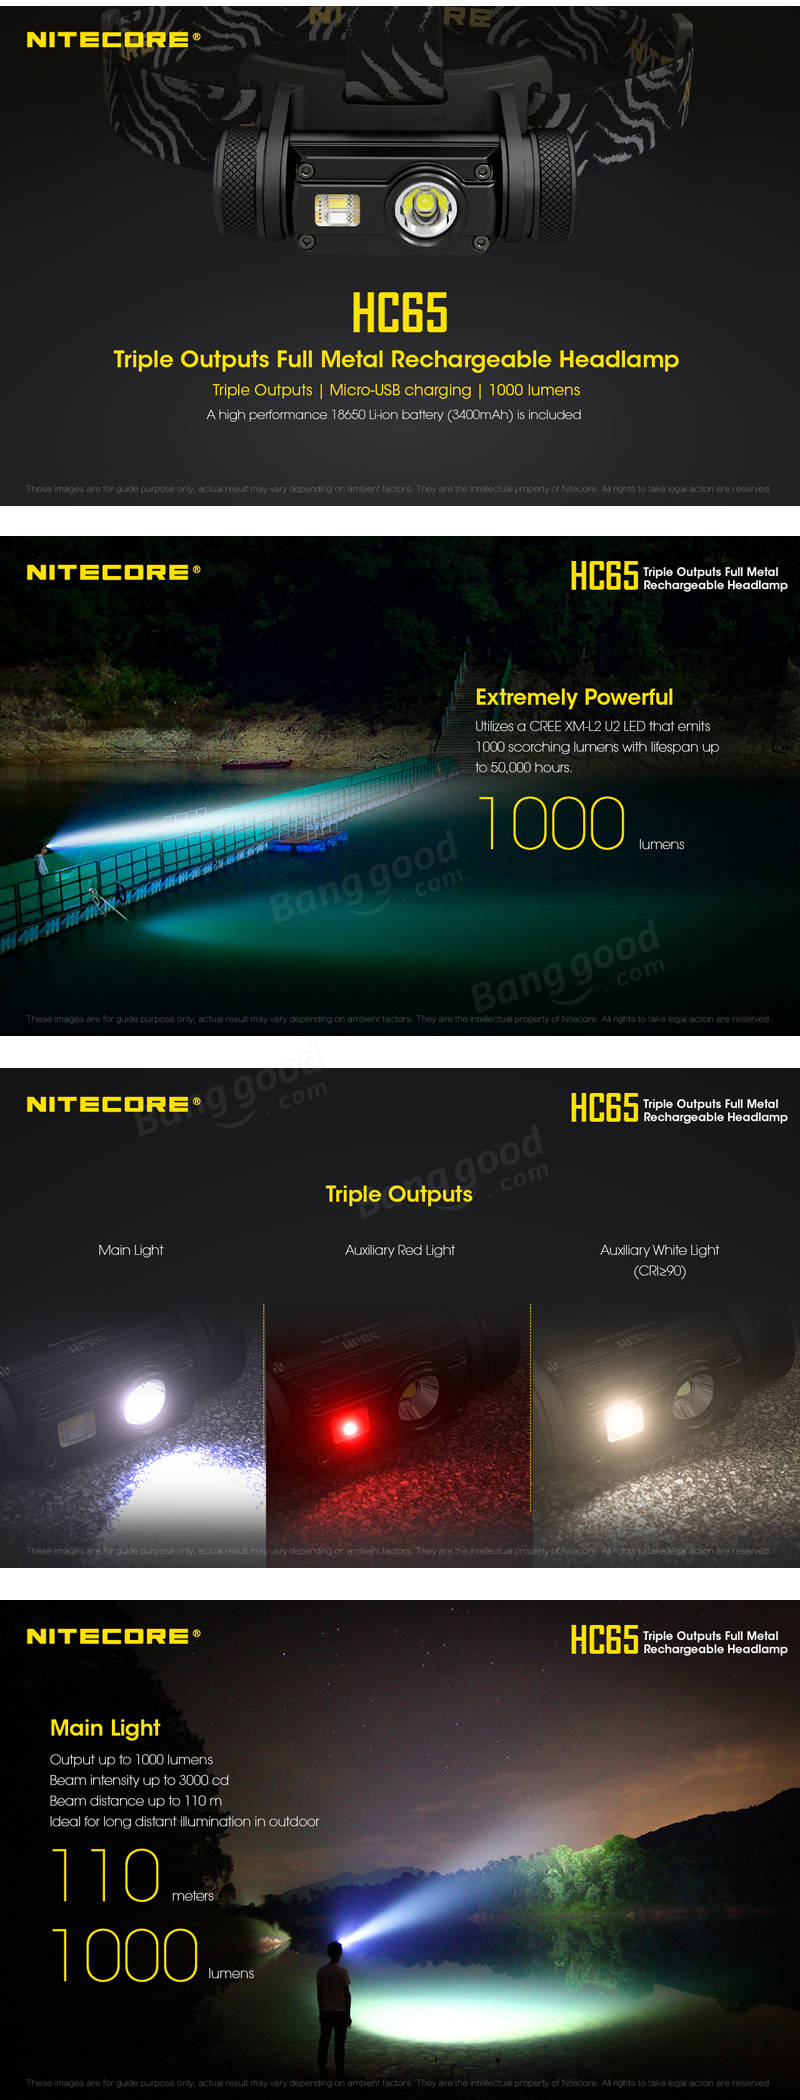 Nitecore HC65 XM-L2 U2 1000lumens Triple Output USB Rechargeable LED Headlamp +18650